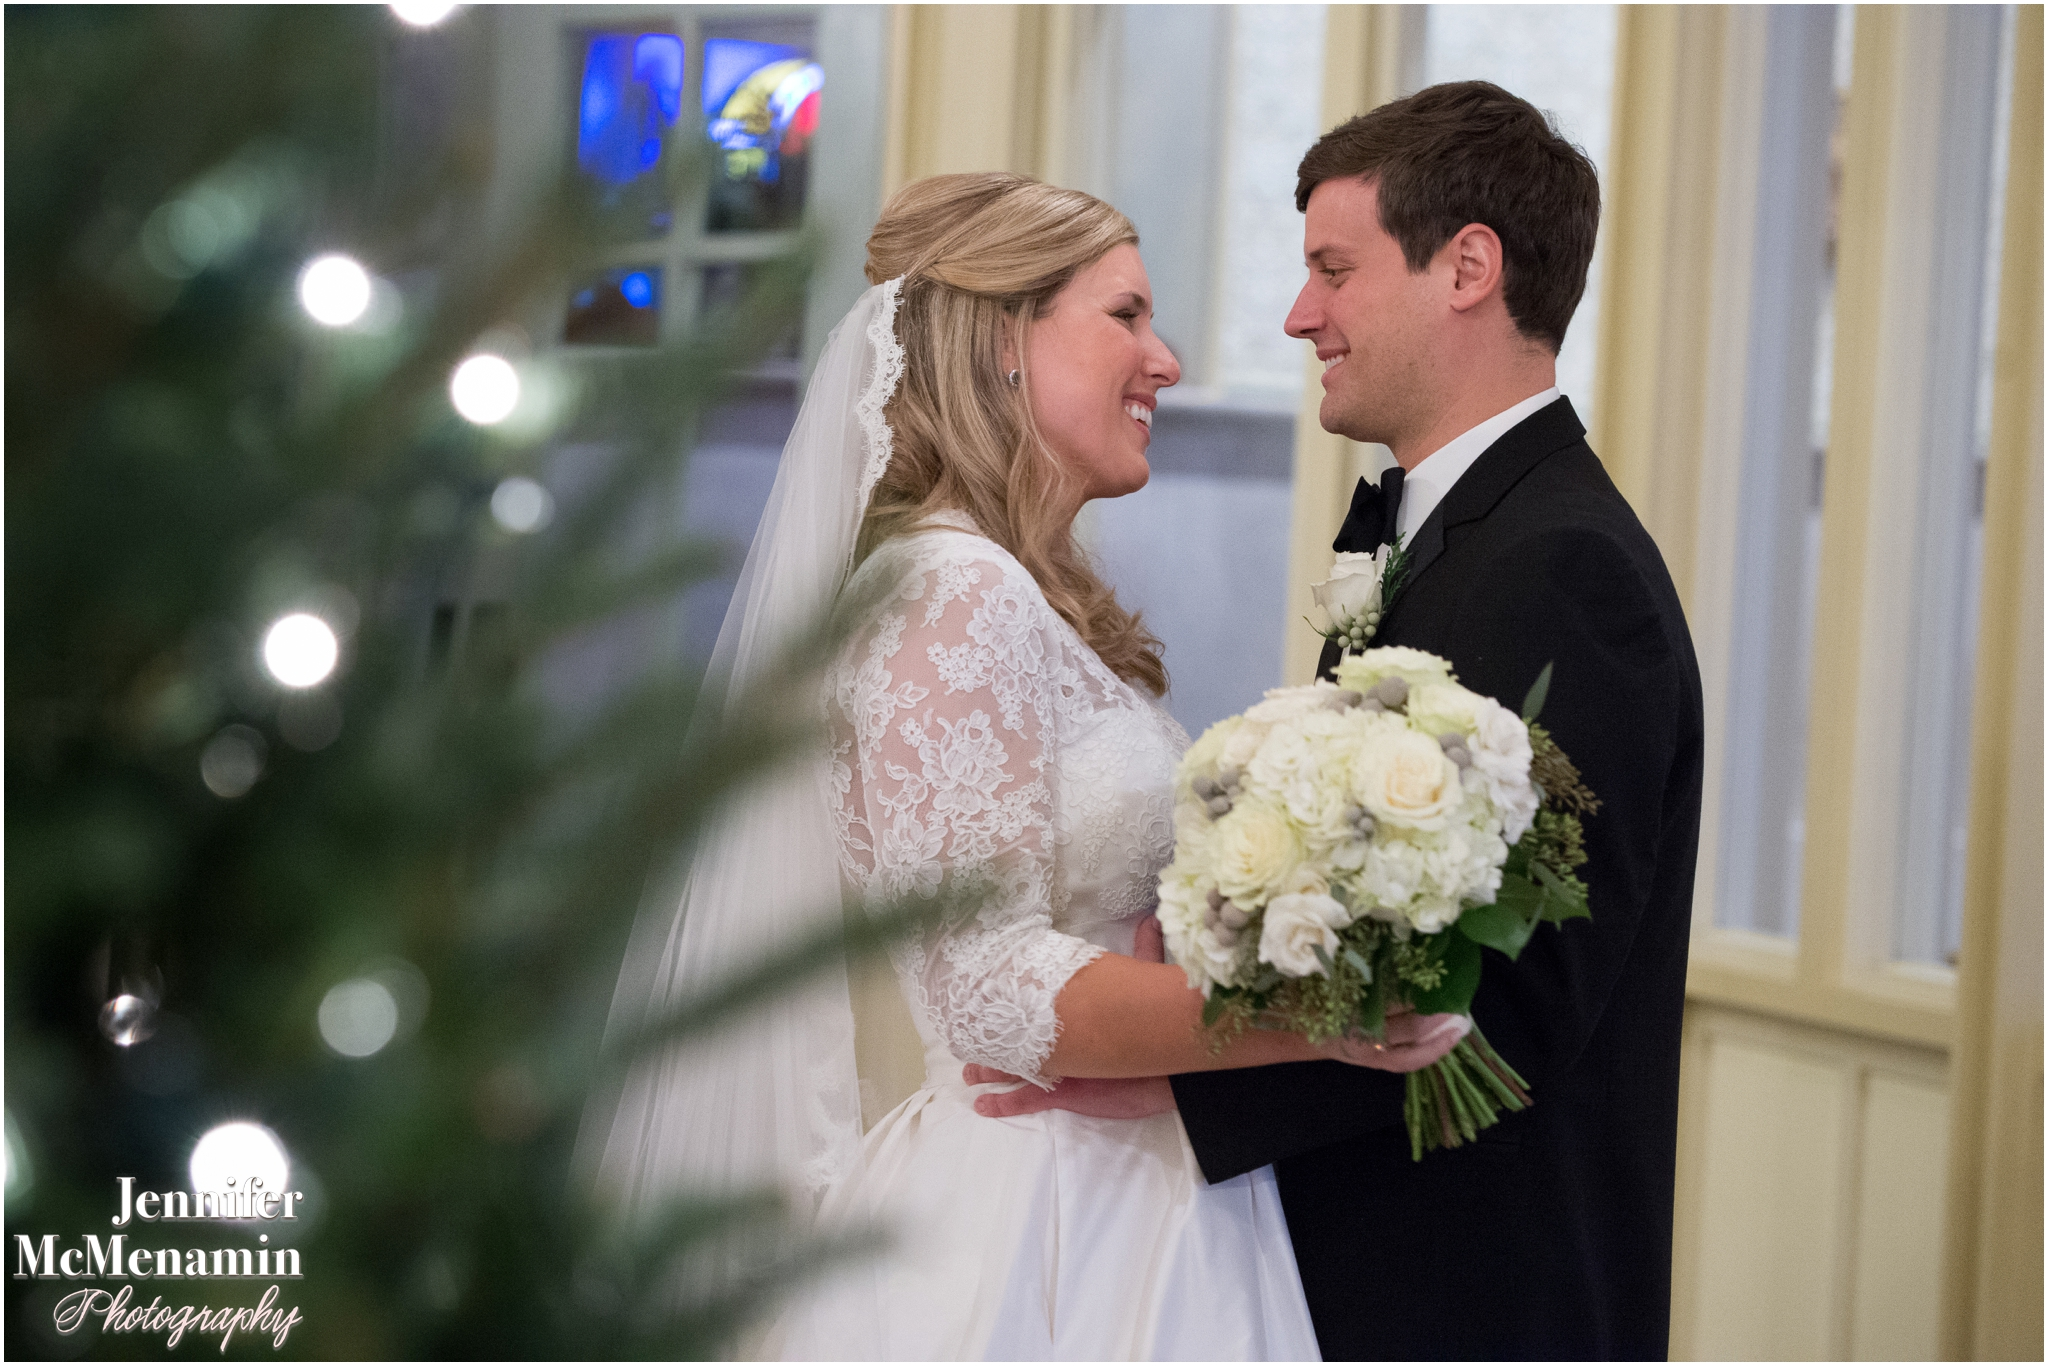 0057_RyanClemmens_01631-0442_JenniferMcMenaminPhotography_Immaculate-Conception-Church_The-Cloisters_Baltimore-wedding-photography_Baltimore-wedding-photographer